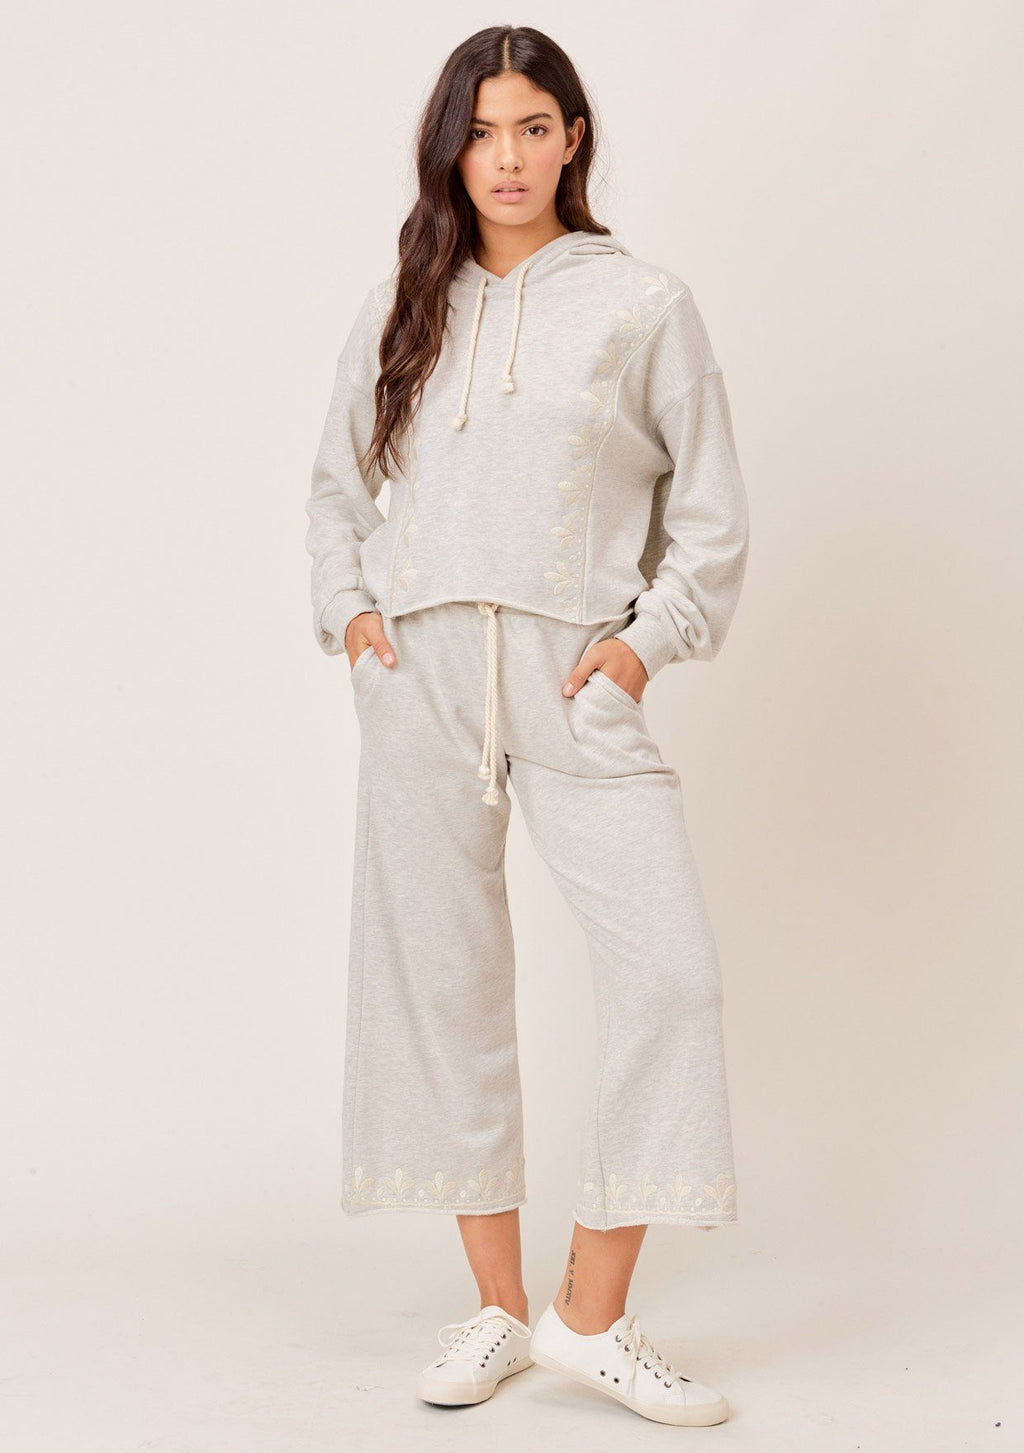 Charli Embroidered Wide-Leg Sweatpants - Jori & June